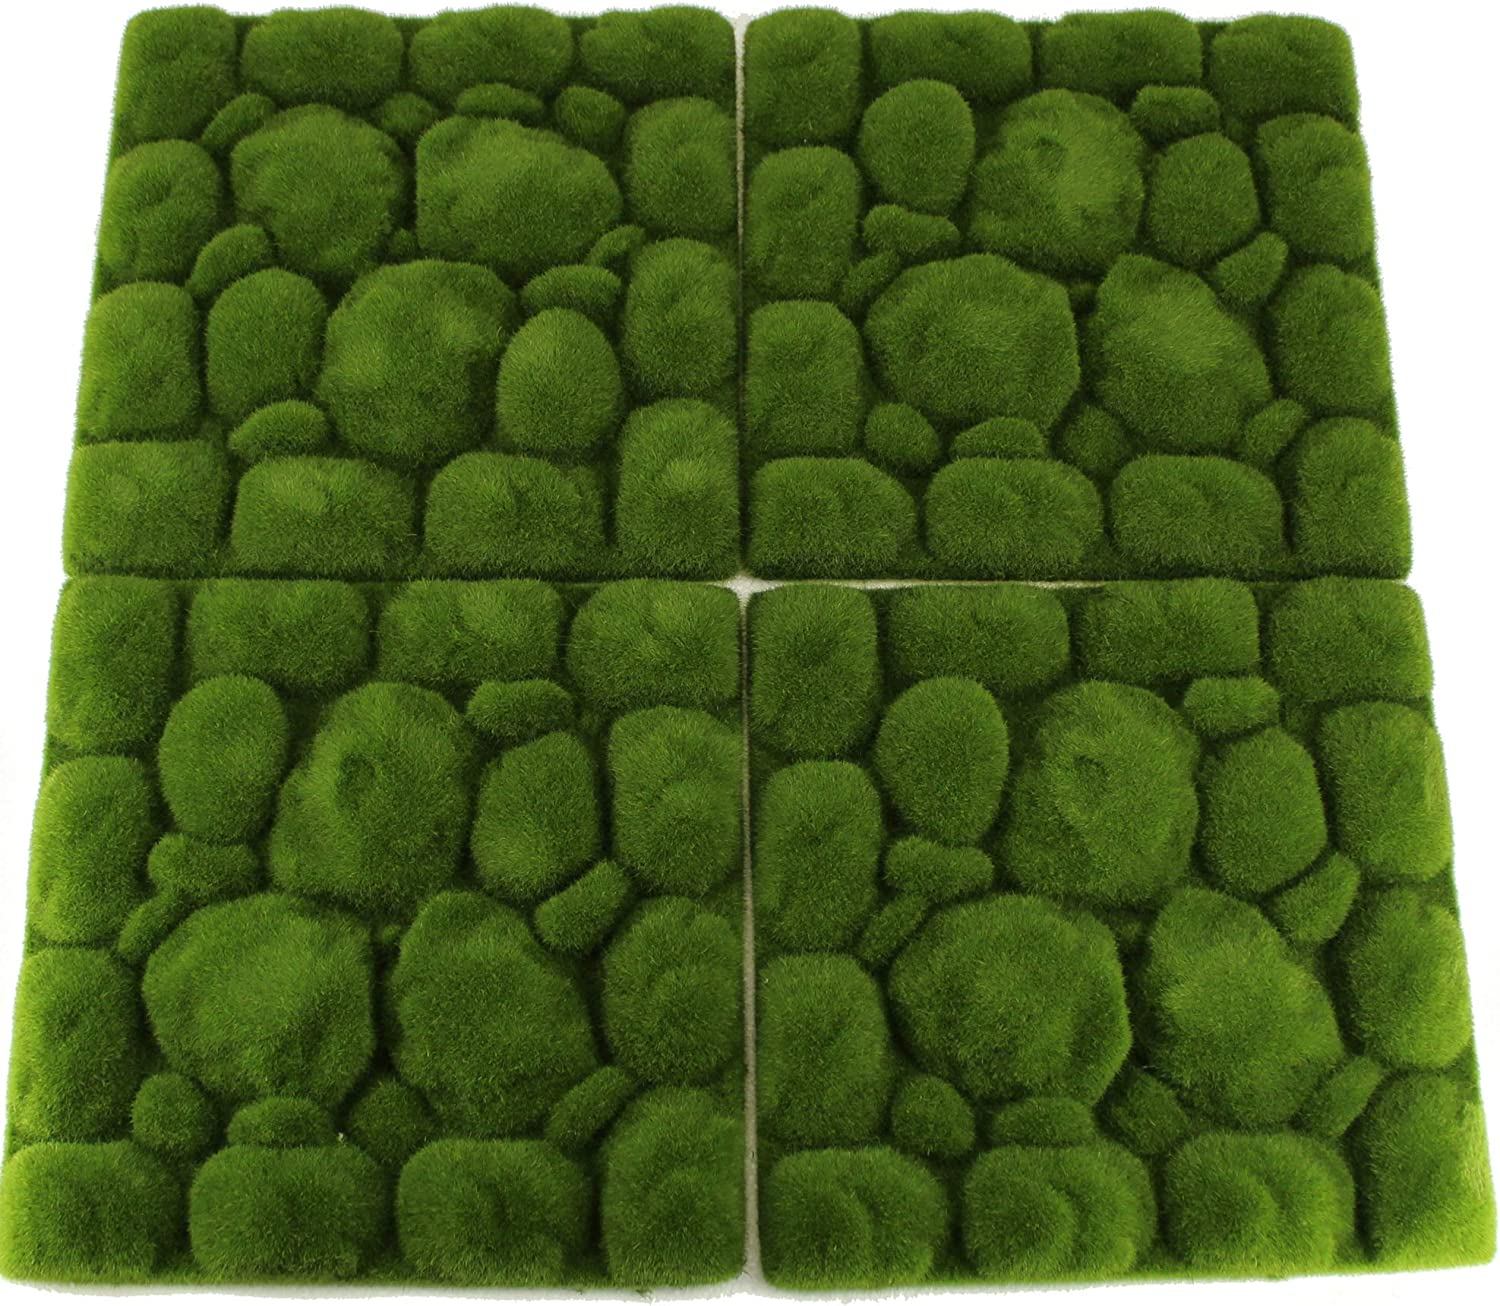 UNIQUE FOREST ARTS Artificial Moss Rocks Panel Decorative Faux Stones Moss mats for Plants Wall,Green Wall Decoration, Fairy Gardens, and Crafting 10 x 10 inch per Panel(Set of 4 pcs)